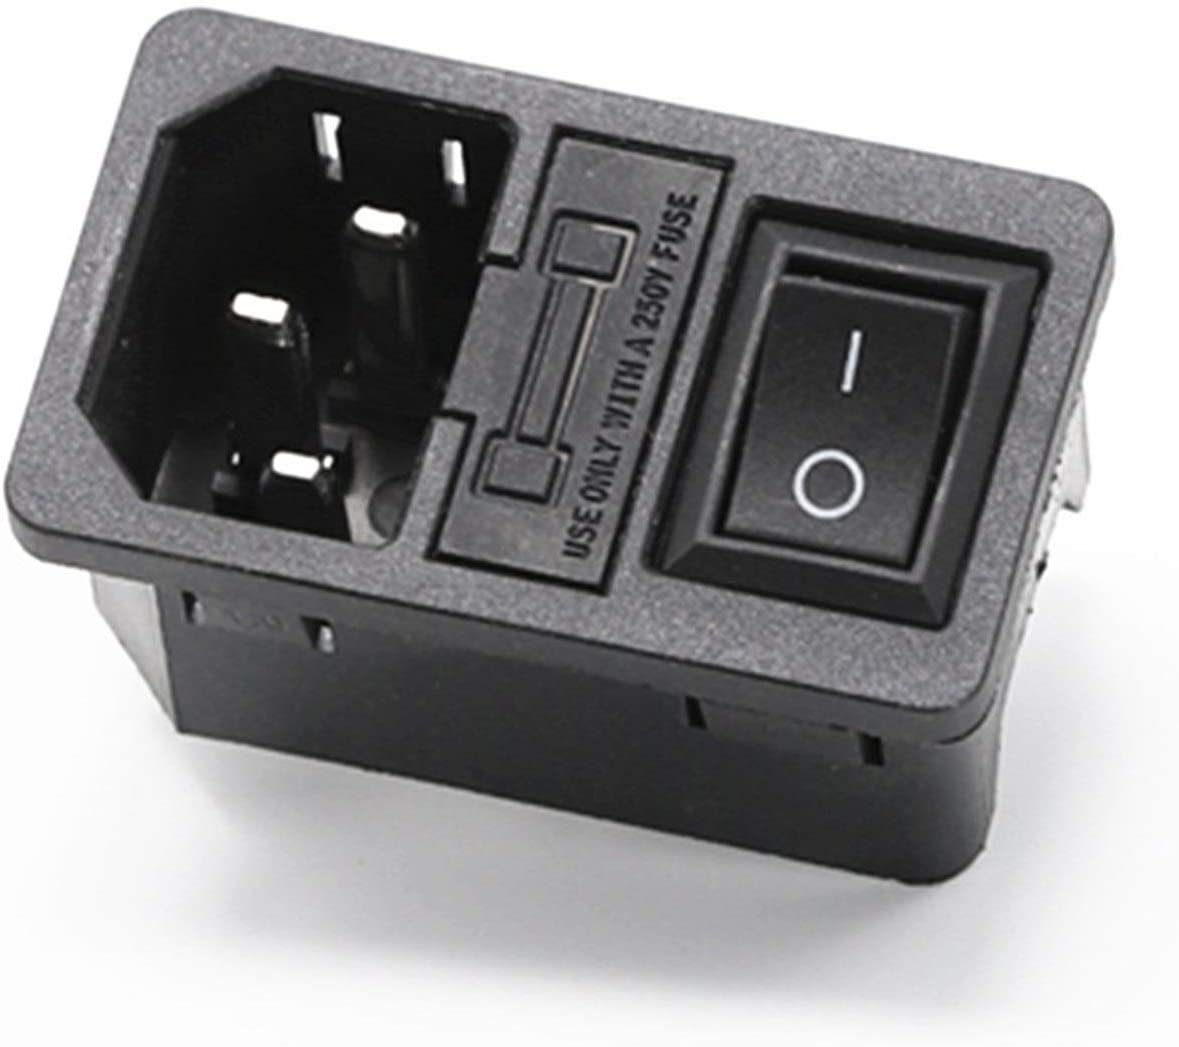 Yutwone Rocker Switch Max 74% OFF 10A 250VAC 3 Plug C14 Cheap mail order specialty store Connector Pin Inlet